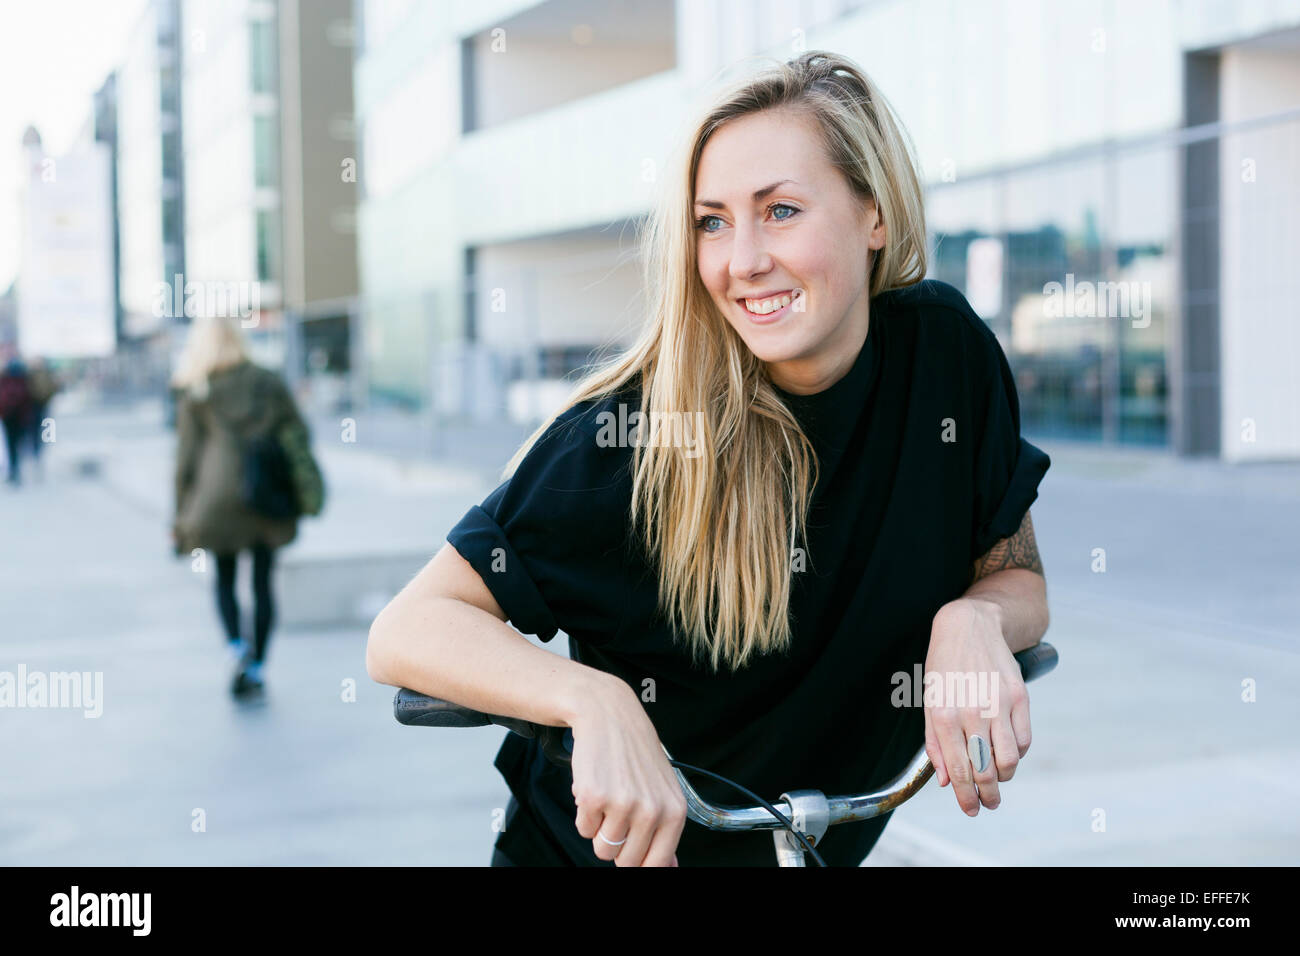 Smiling female college student leaning on bicycle outdoors - Stock Image